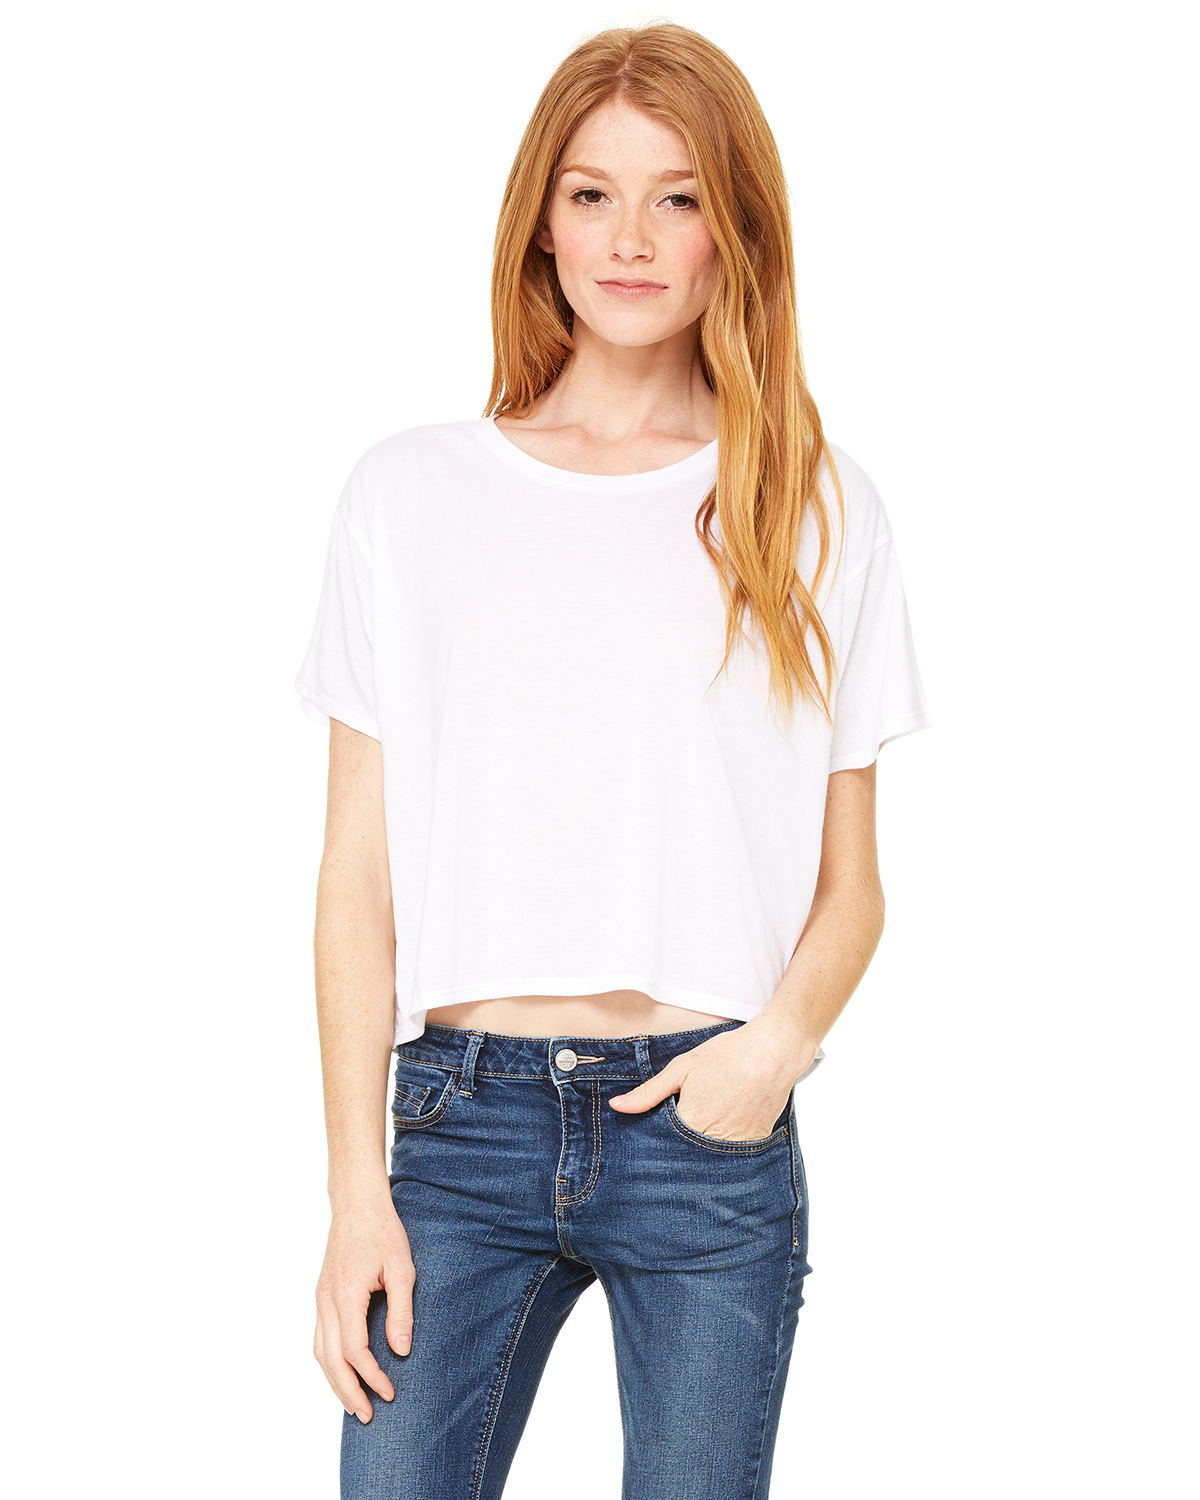 Bella B8881 Ladies 3.7 oz. Boxy T